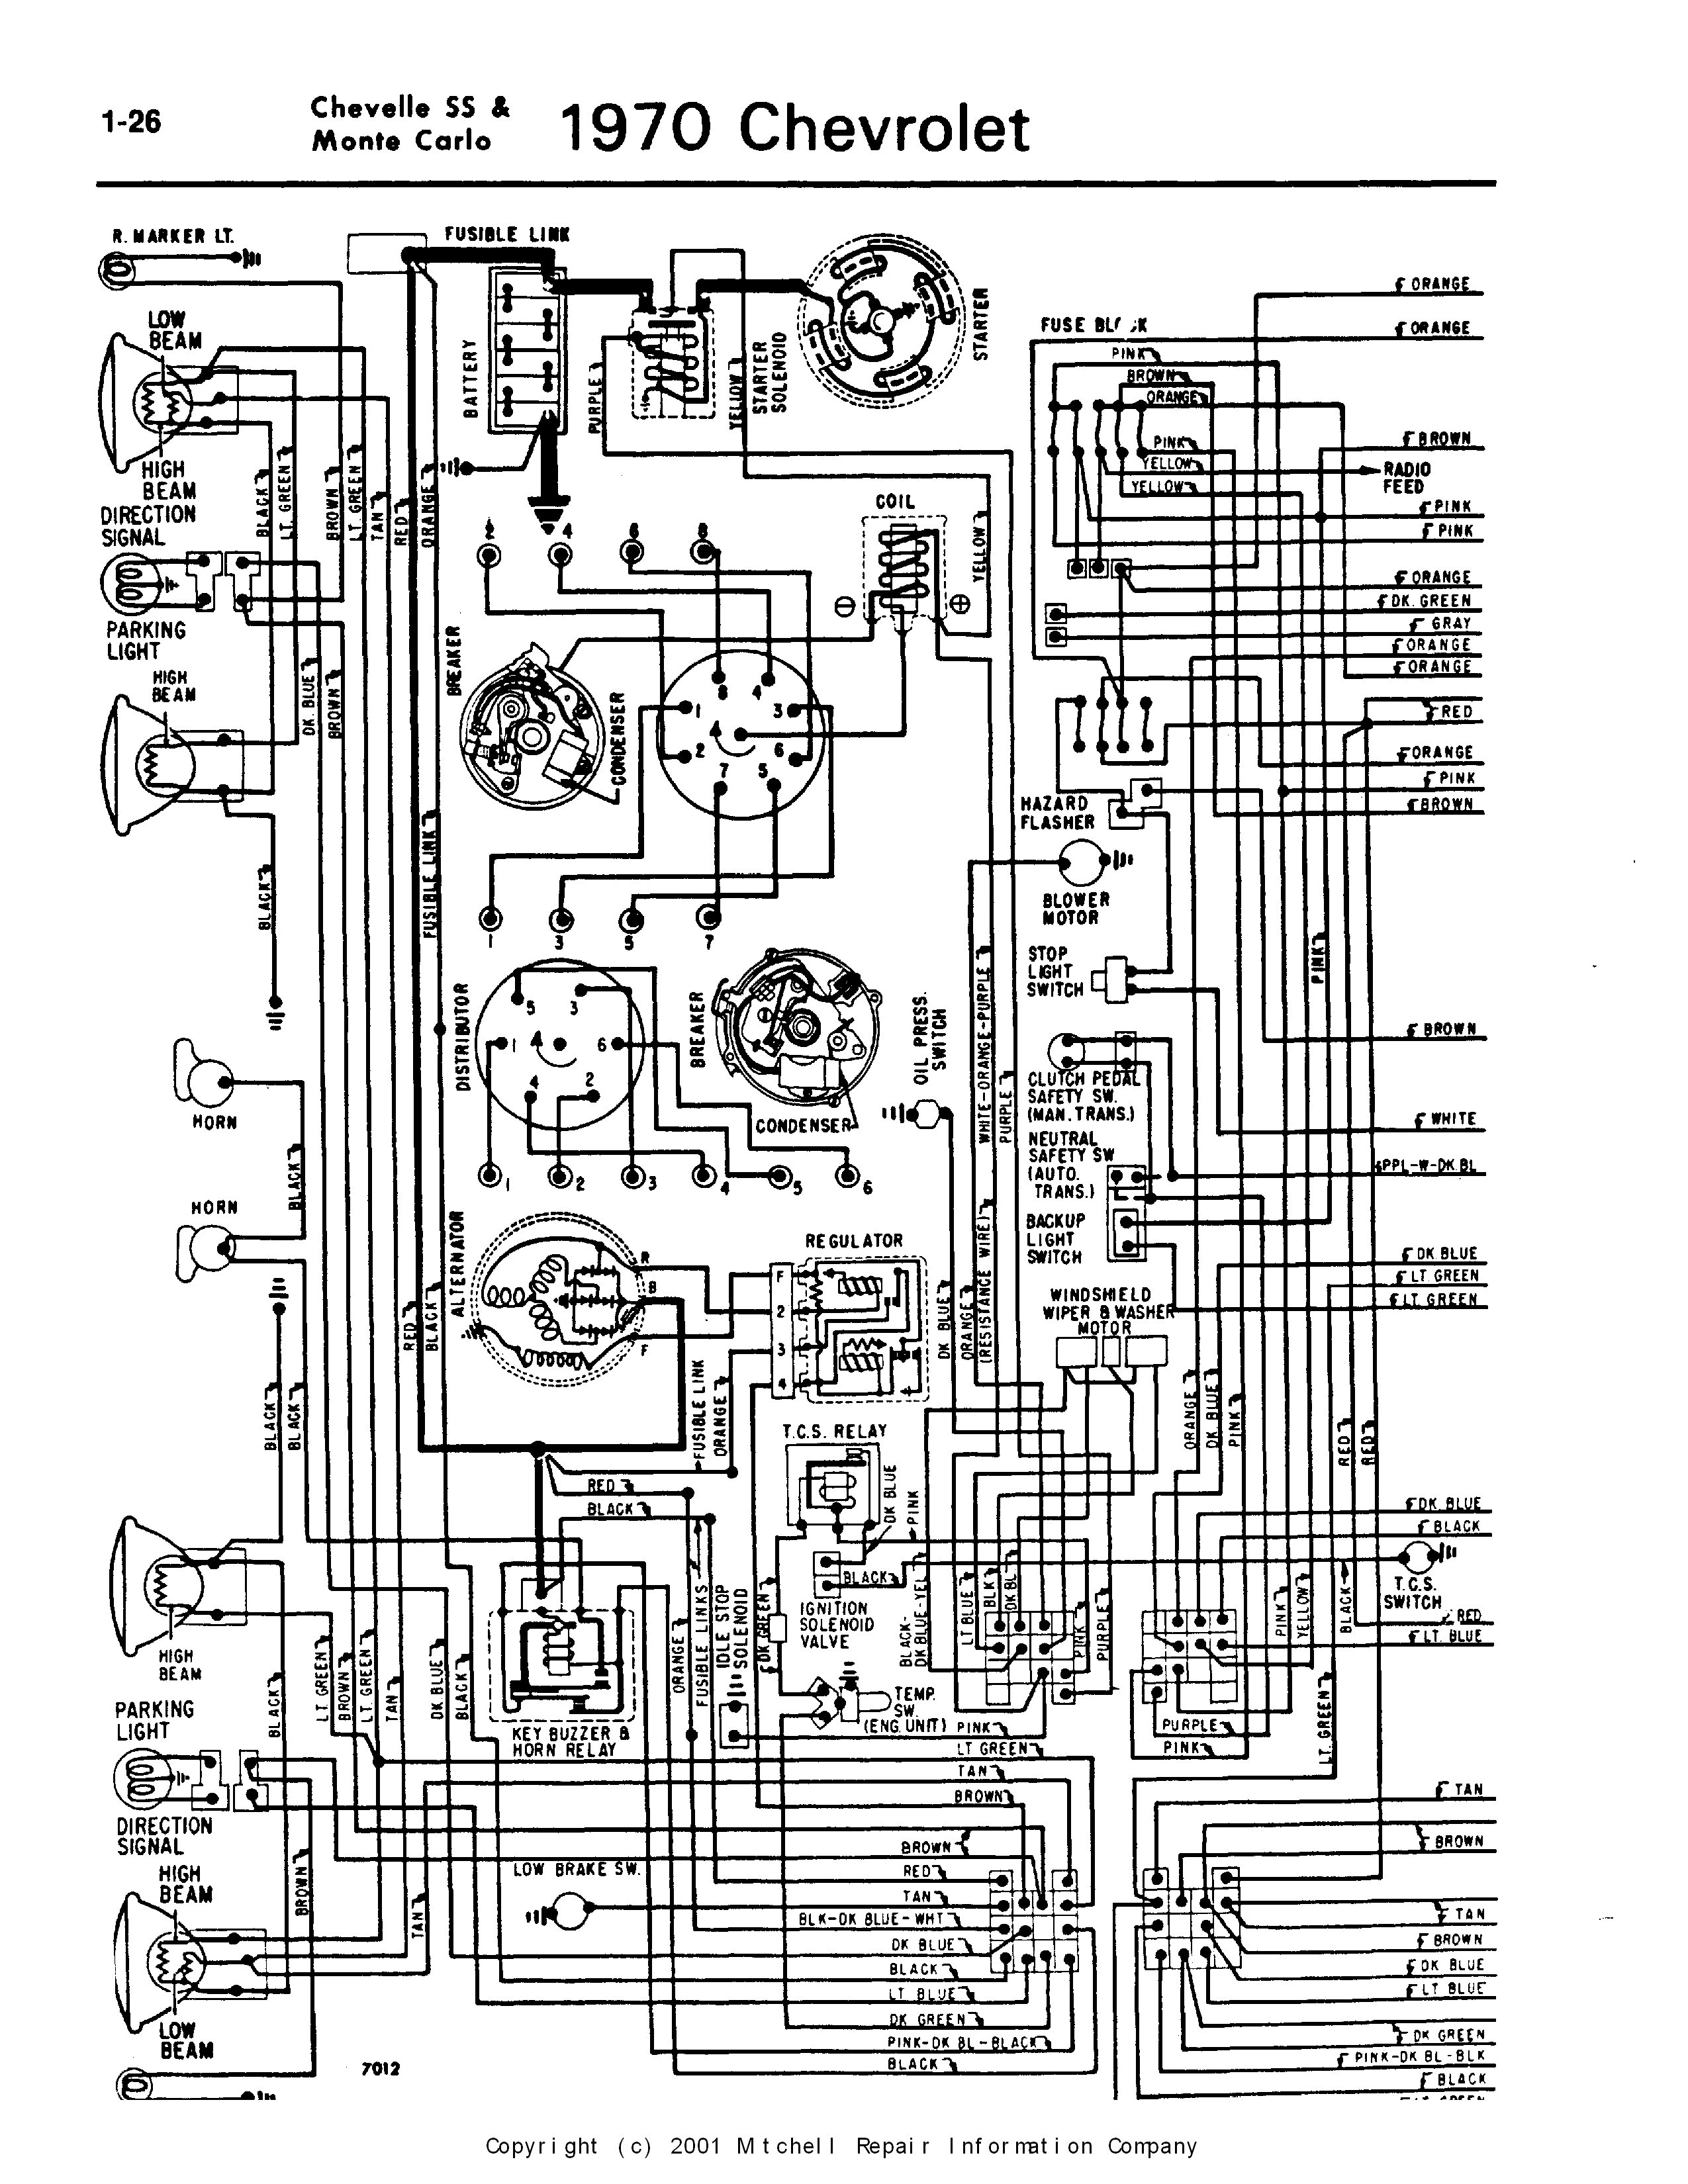 small resolution of 68 impala convertible wiring diagram general wiring diagram data1968 nova wiring diagram free picture schematic wiring